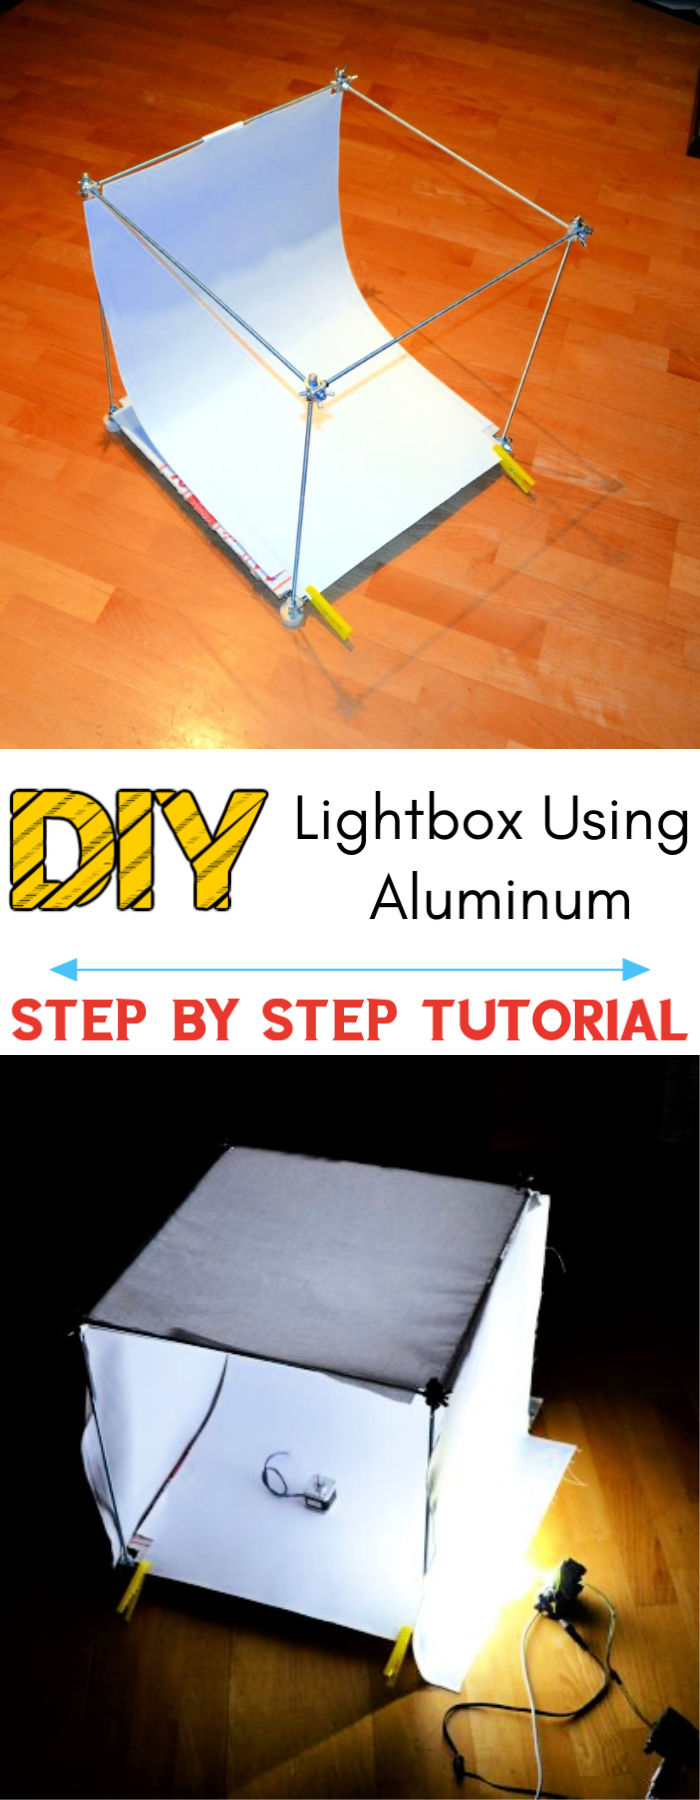 DIY Lightbox using Aluminum